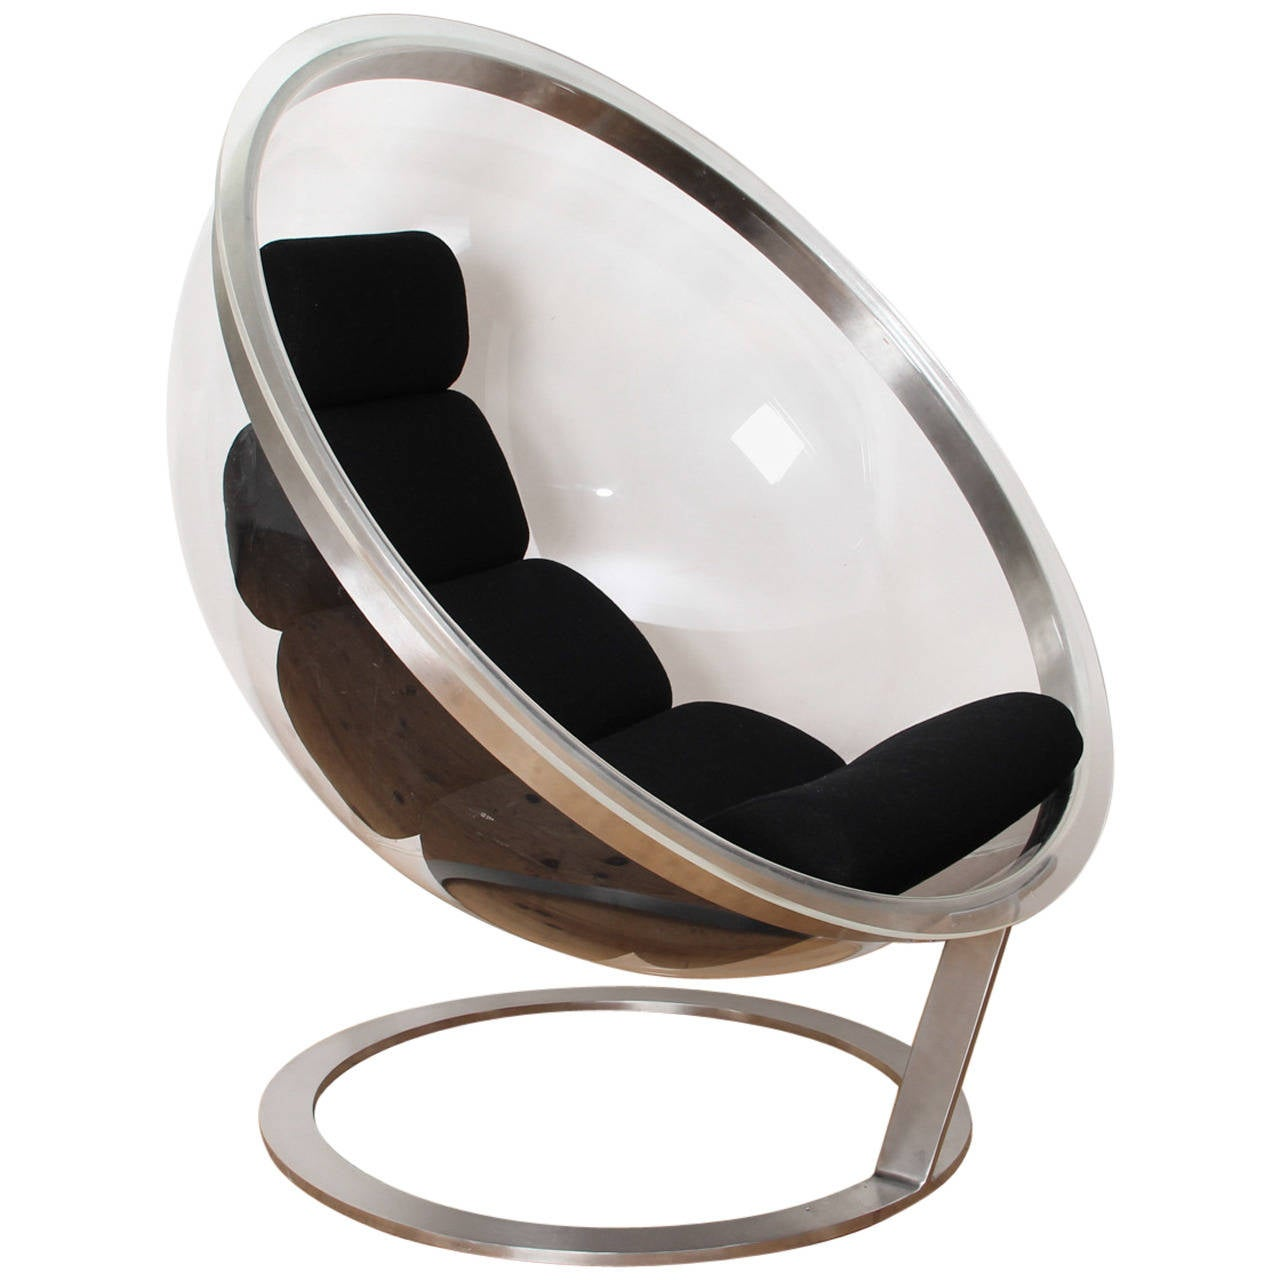 bubble club chair replica recliner covers australia lounge by christian daninos edited formes